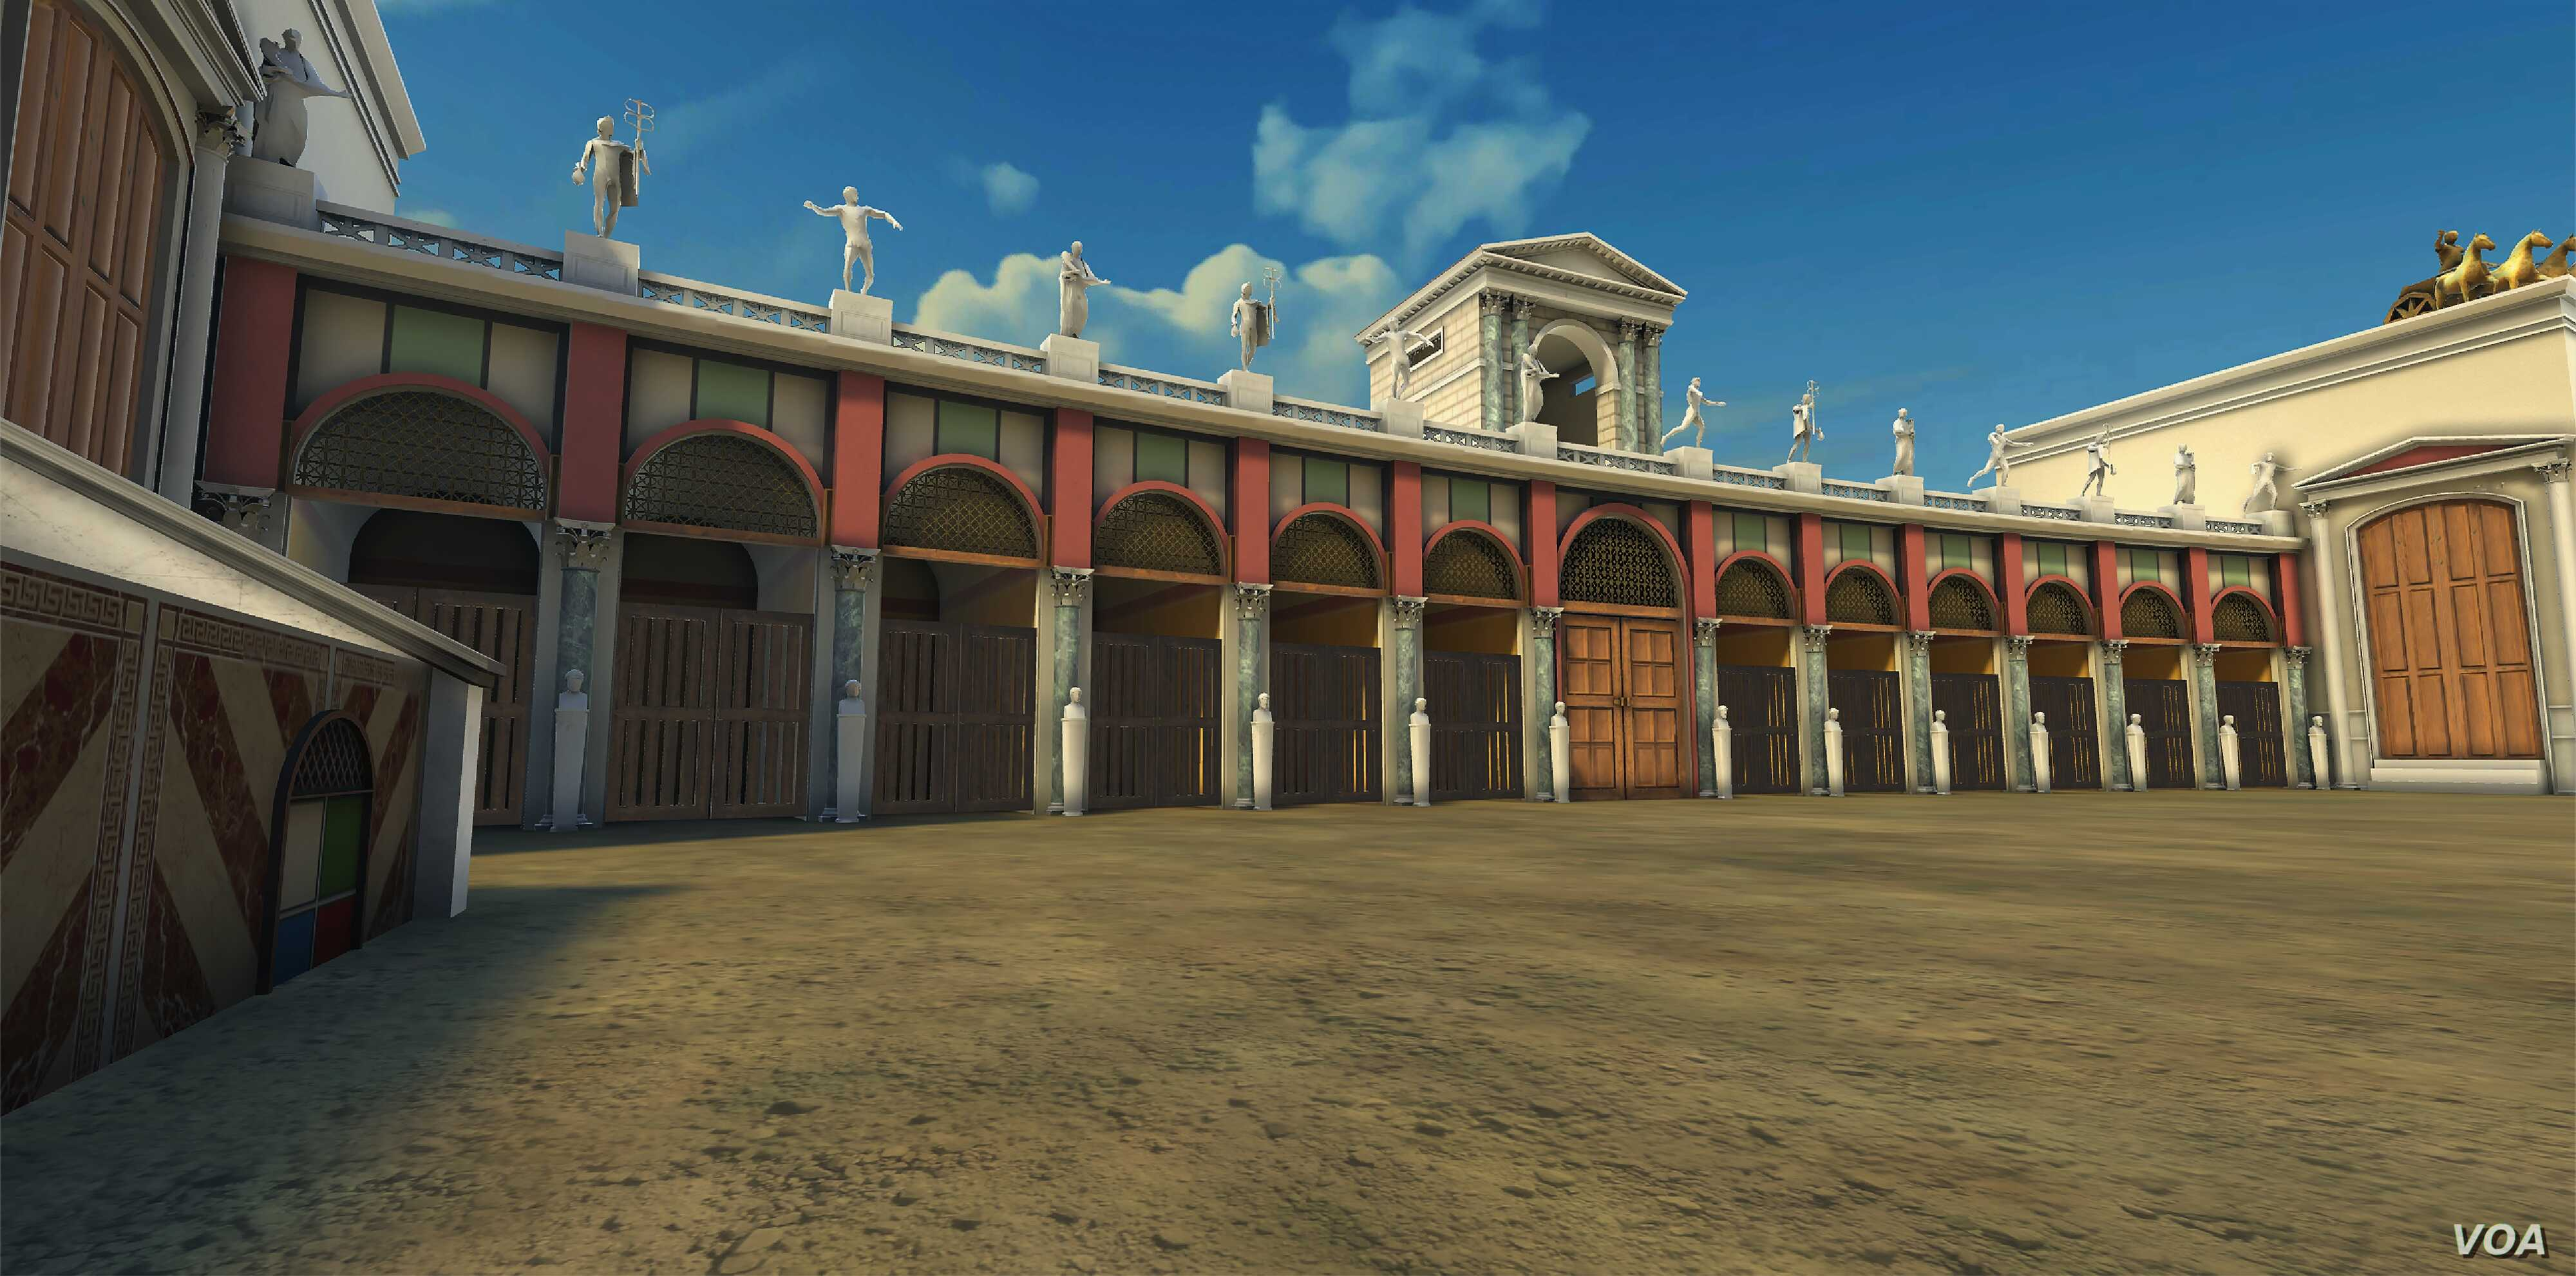 Rome's Circus Maximus reconstructed, showing the opposite end of the arena.